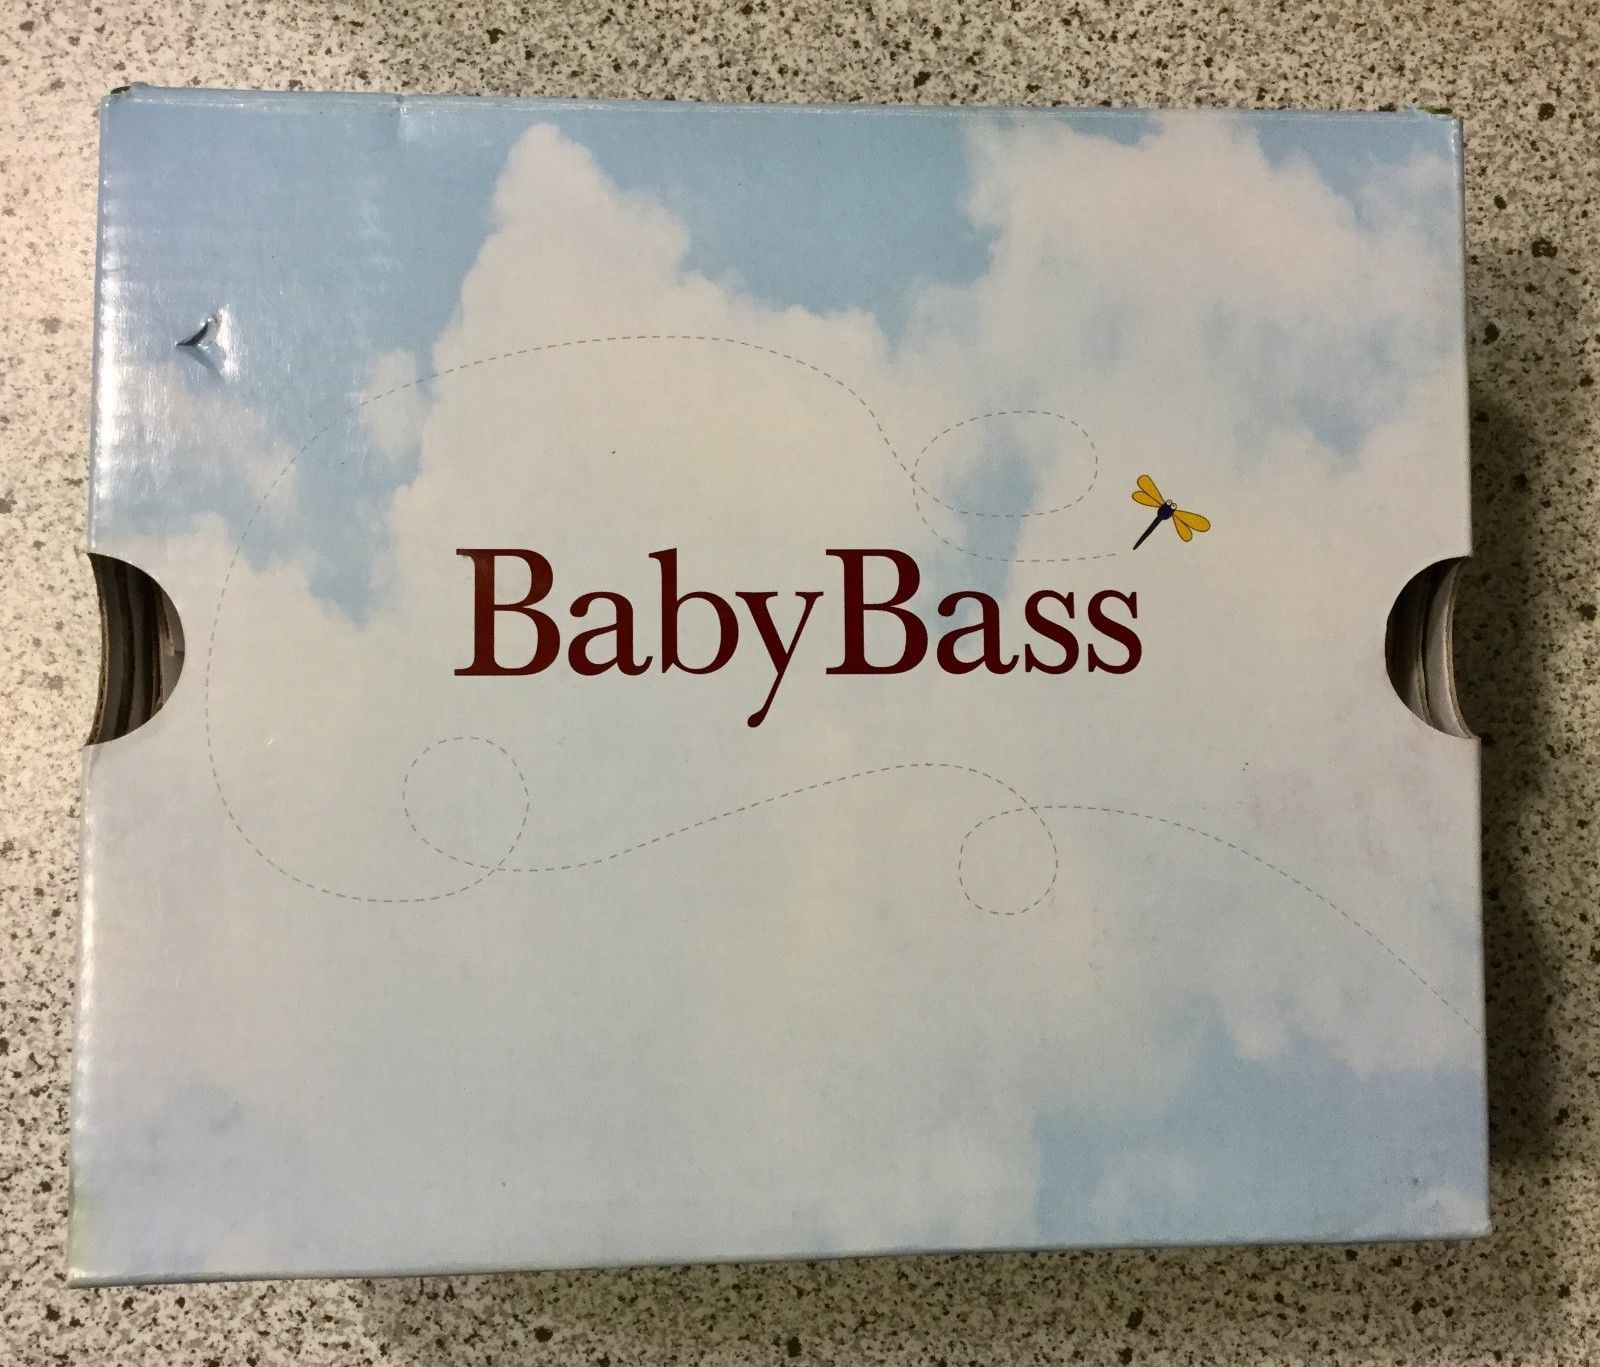 Baby Bass Tan Bucky II 2 Boys Shoes Size 8 M Leather 6547-261 With Box image 6